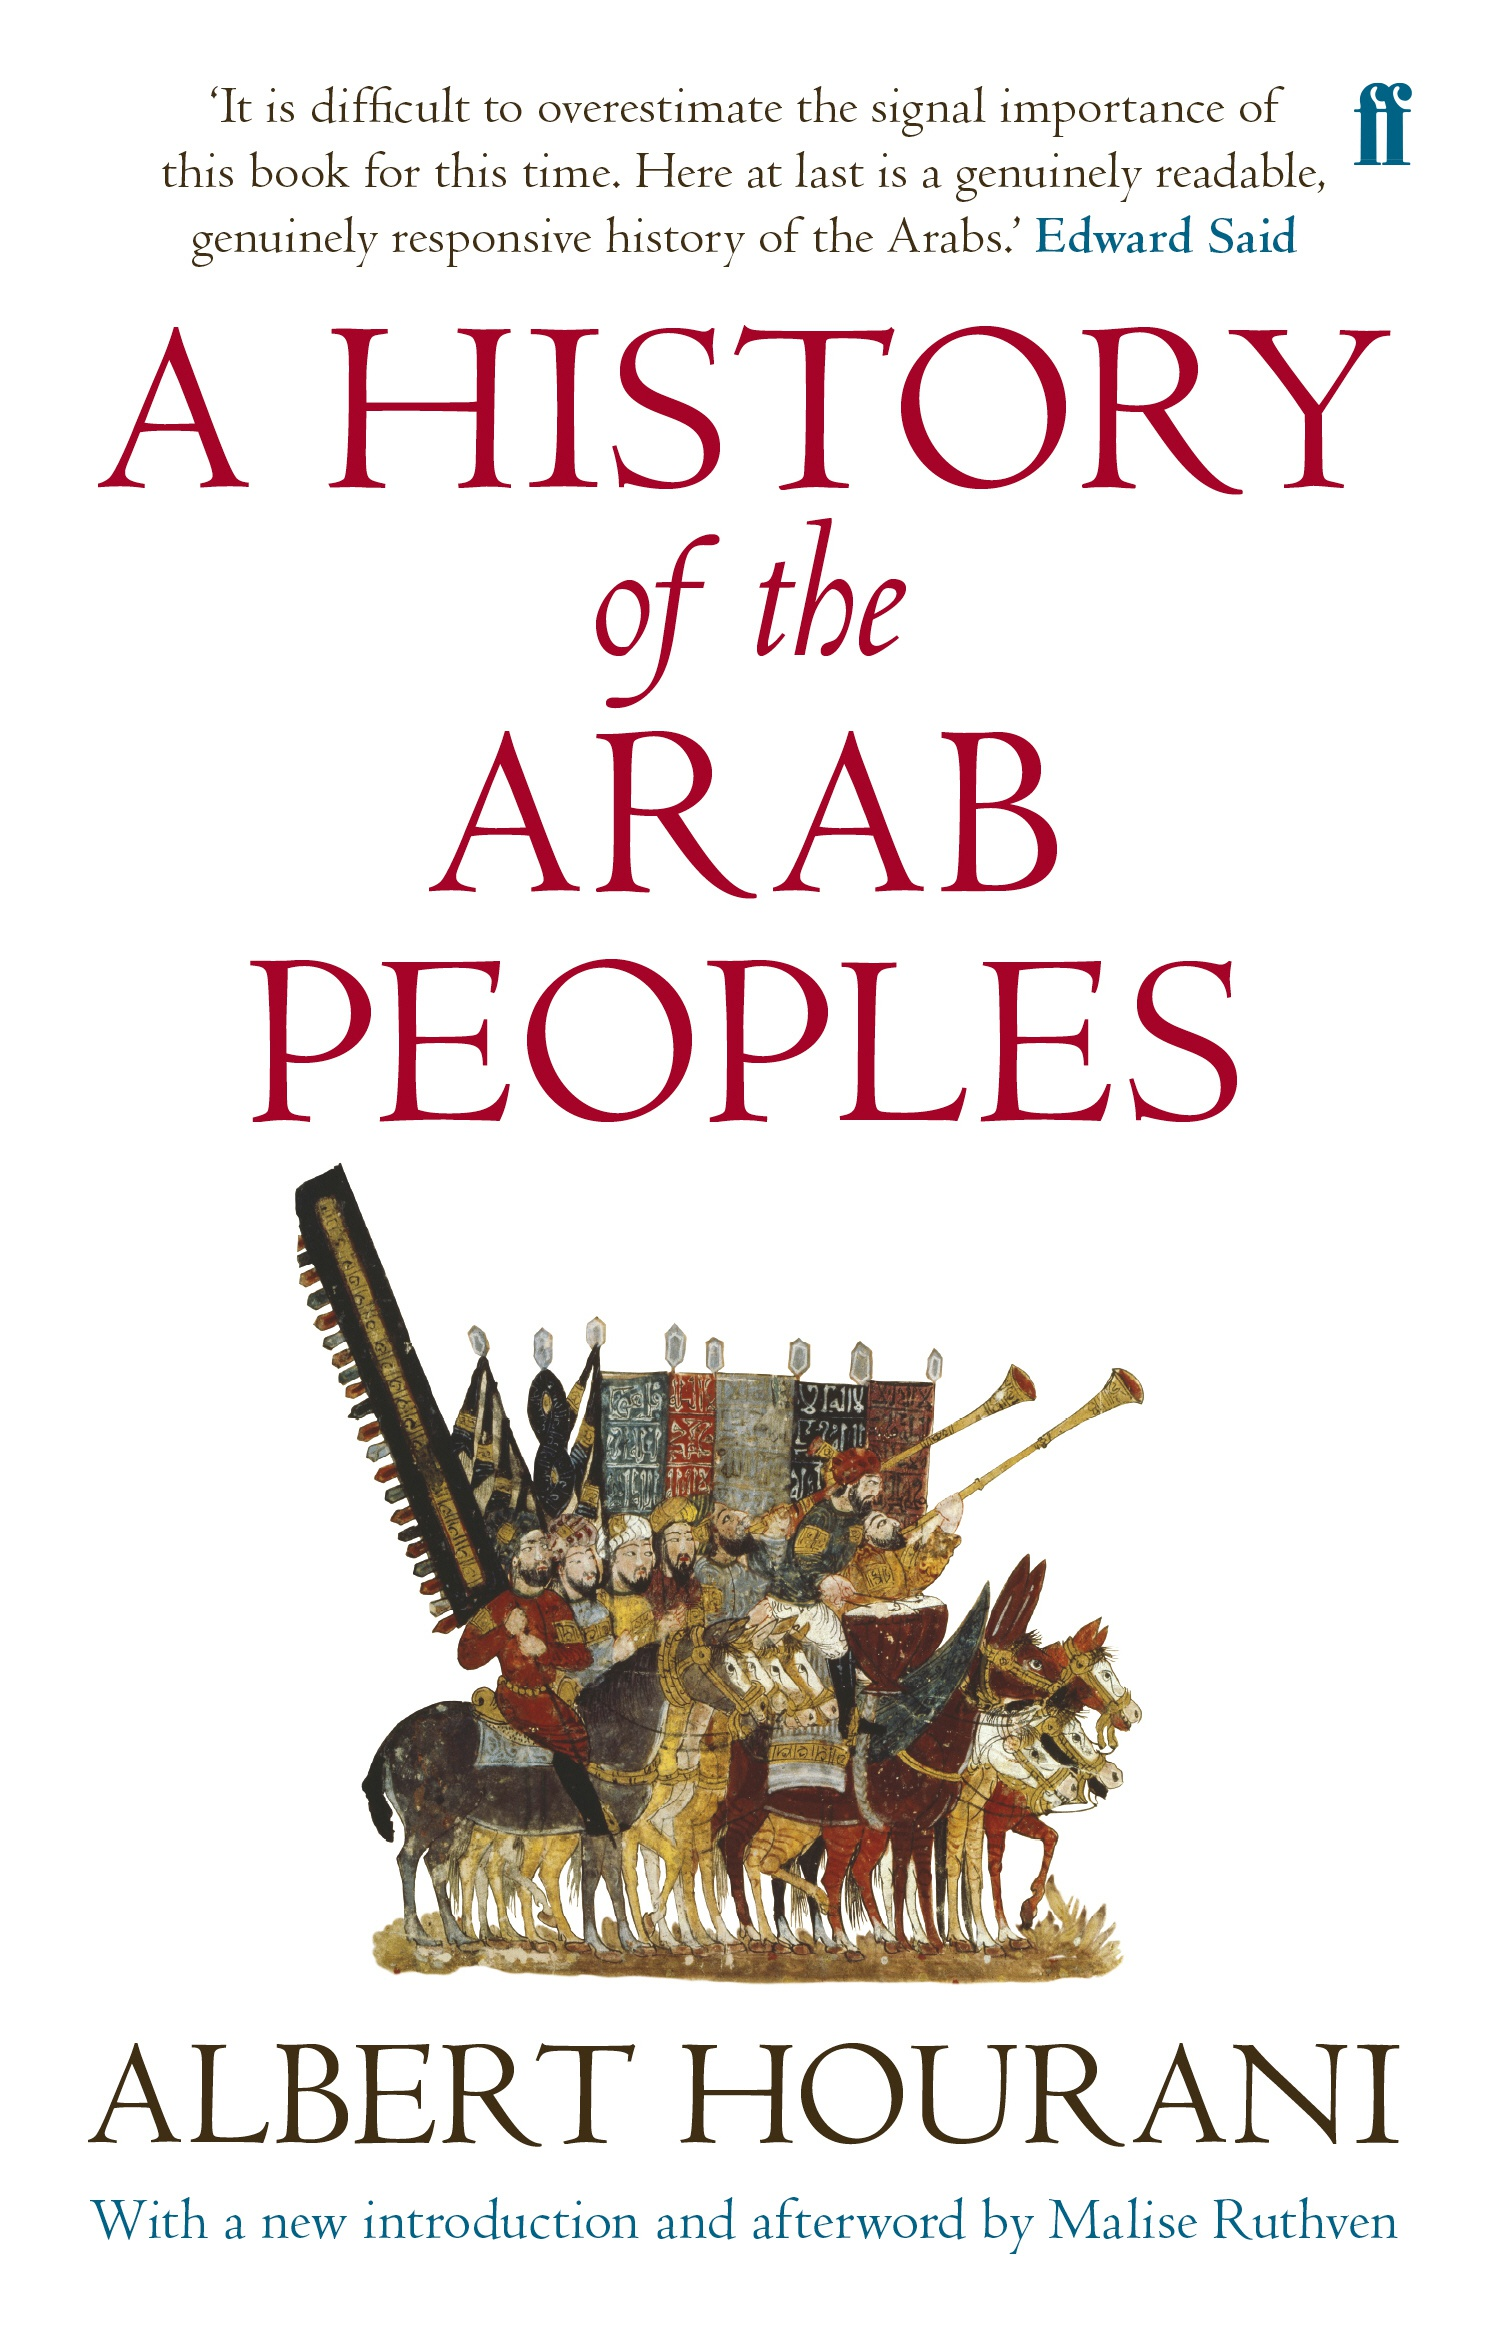 a history of the arab peoples pdf download